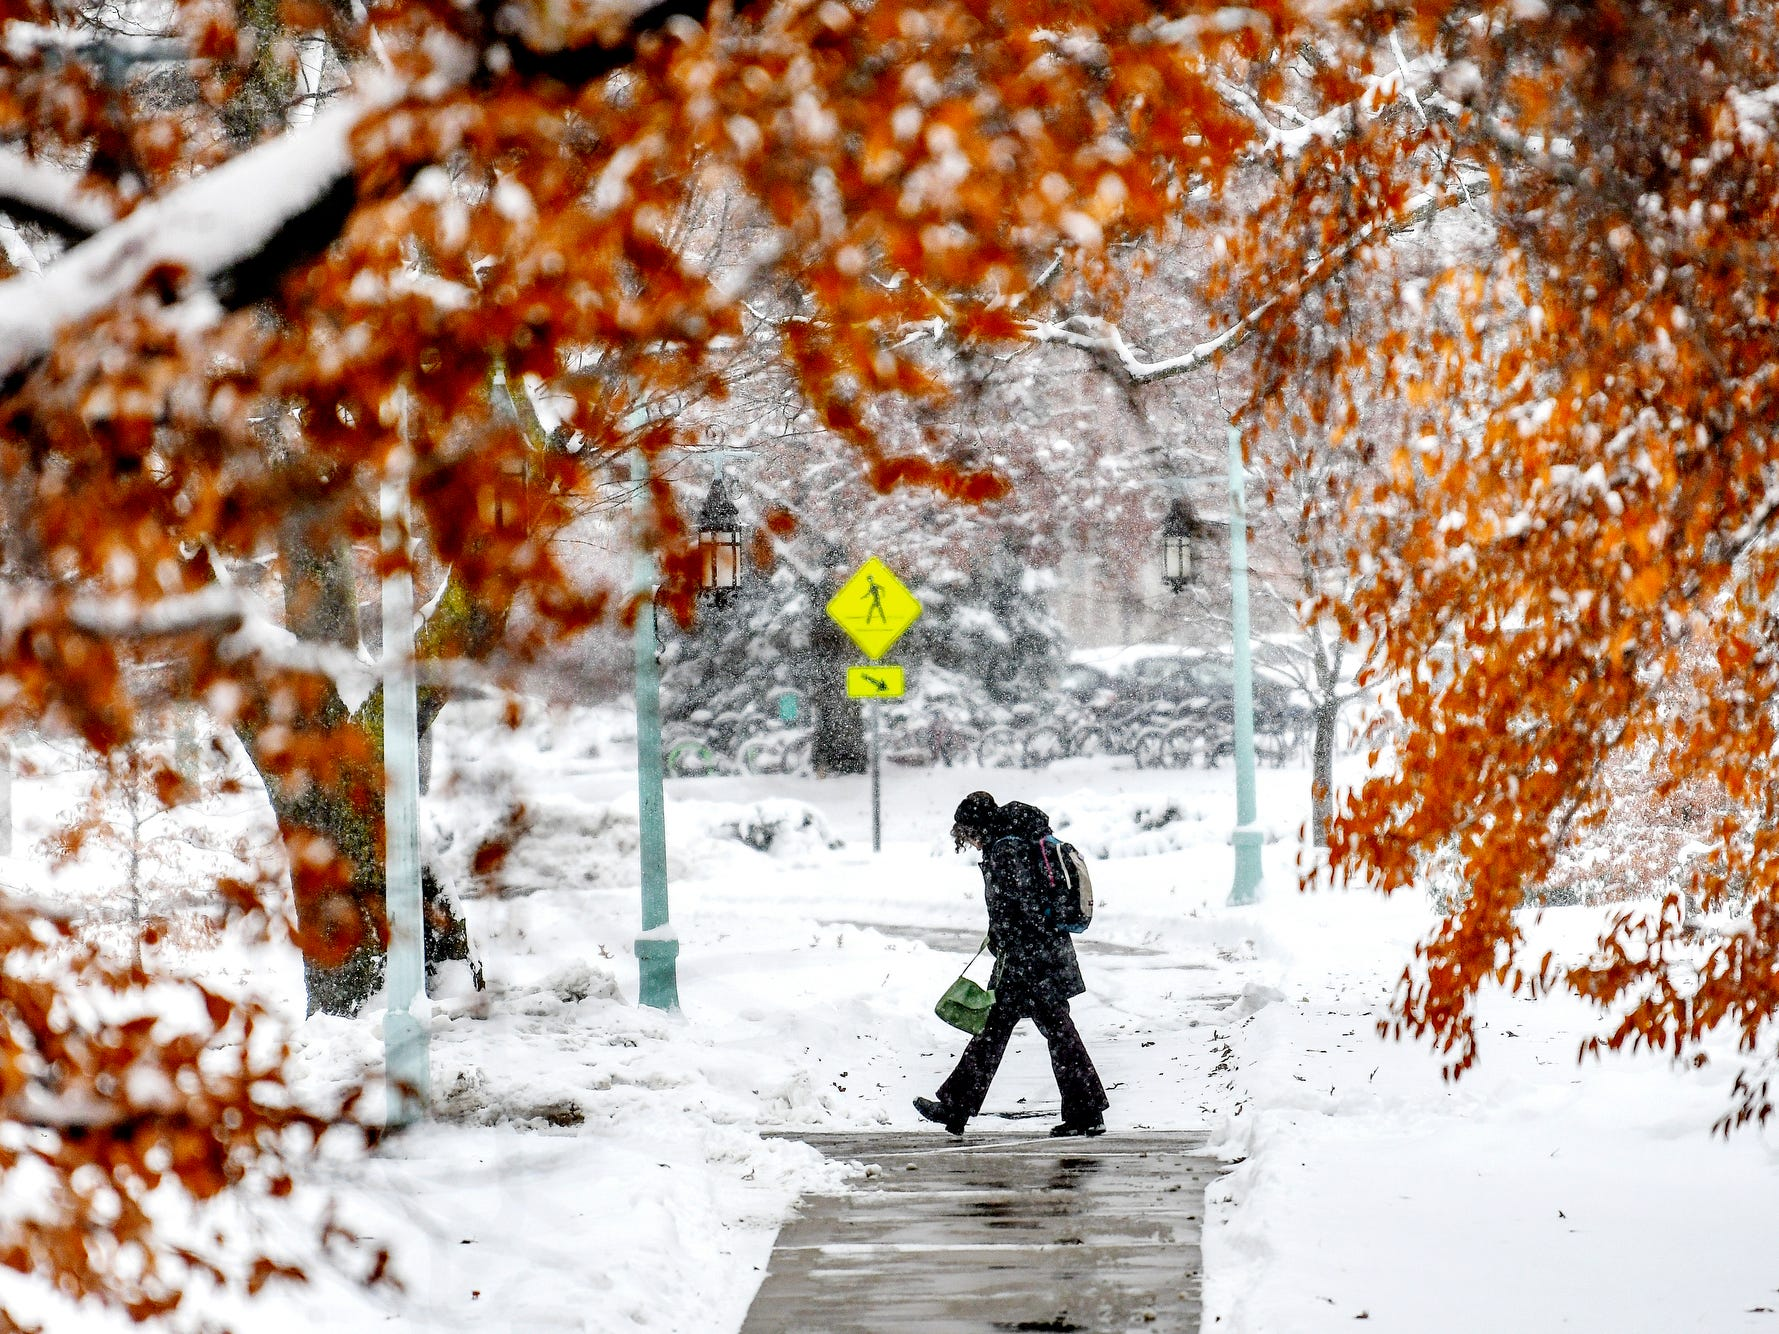 A pedestrian walks along a path near trees still showing signs of fall on Monday, Nov. 26, 2018, on the Michigan State University campus in East Lansing, Mich.